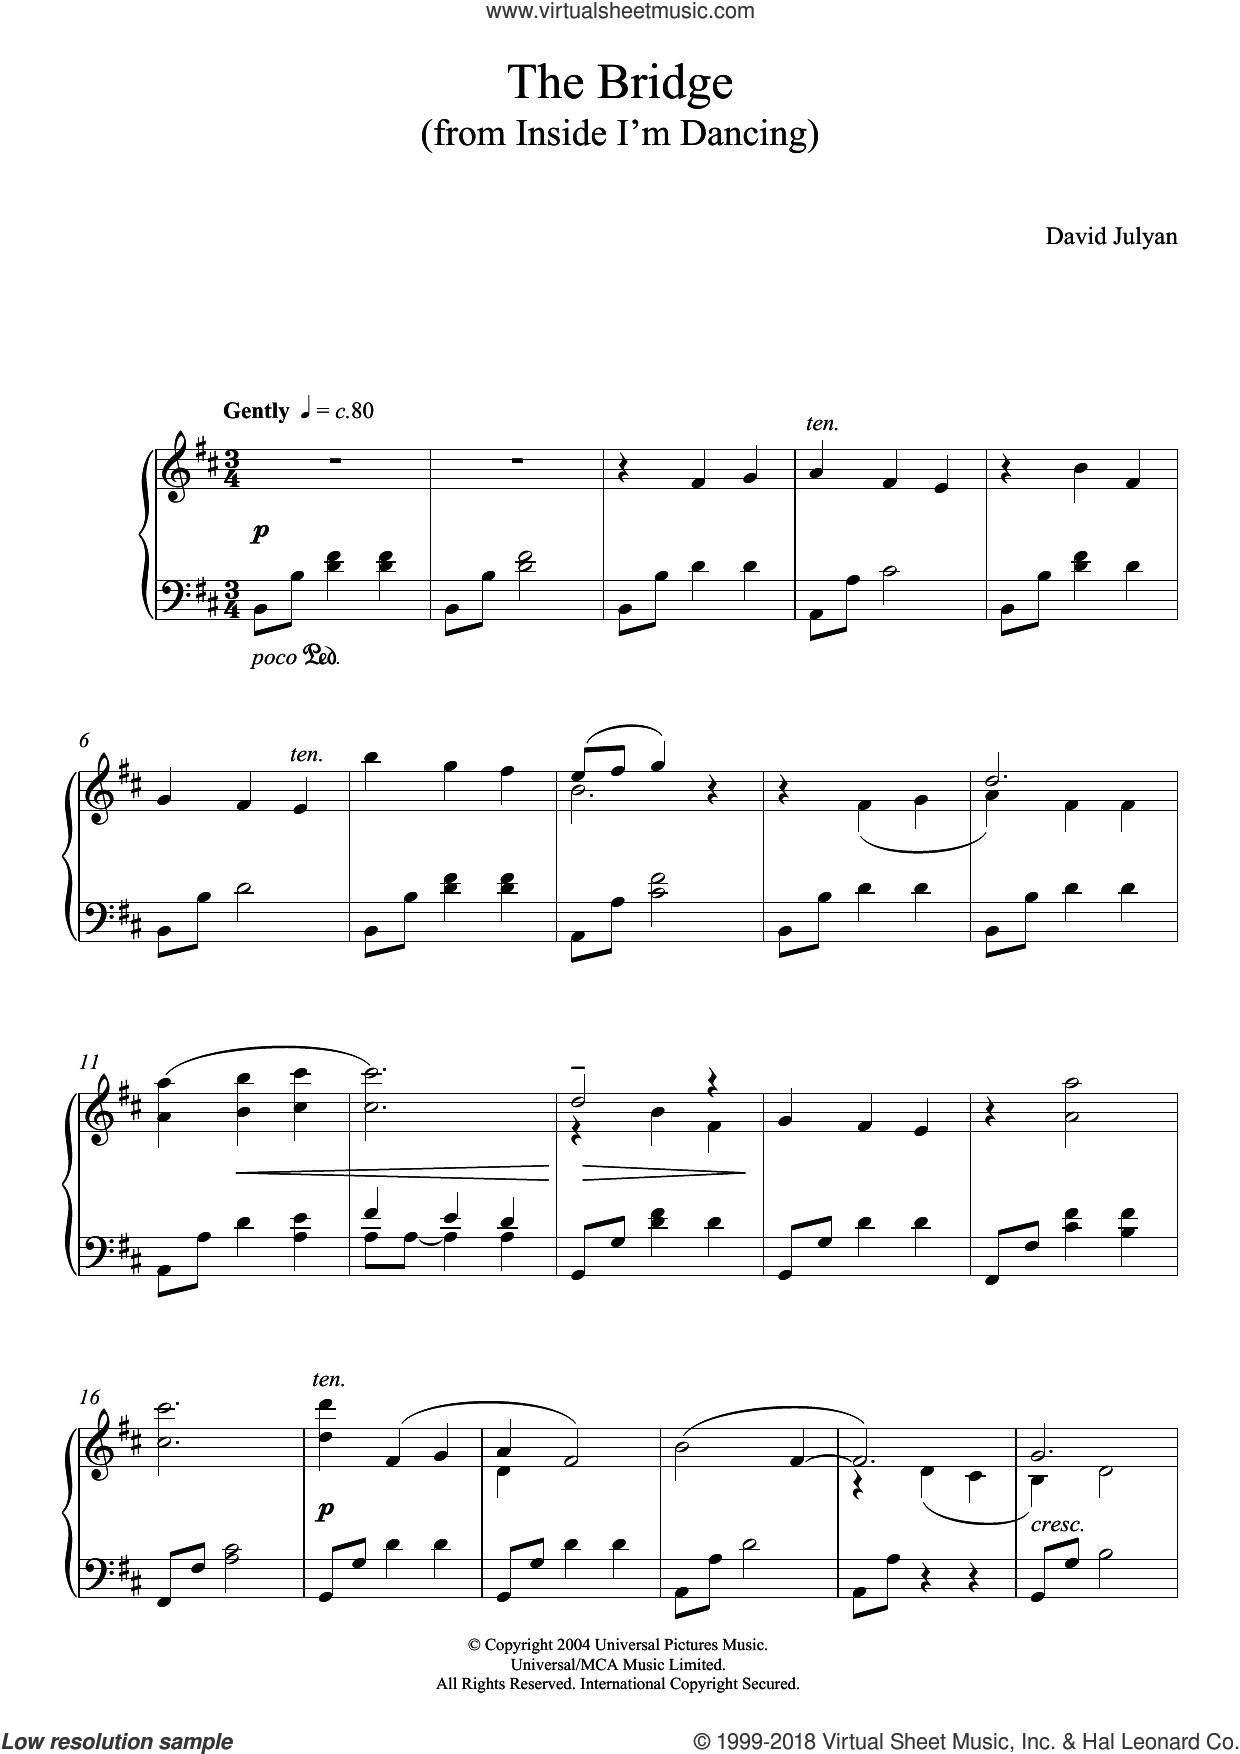 The Bridge (from Inside I'm Dancing) sheet music for piano solo by David Julyan, intermediate skill level